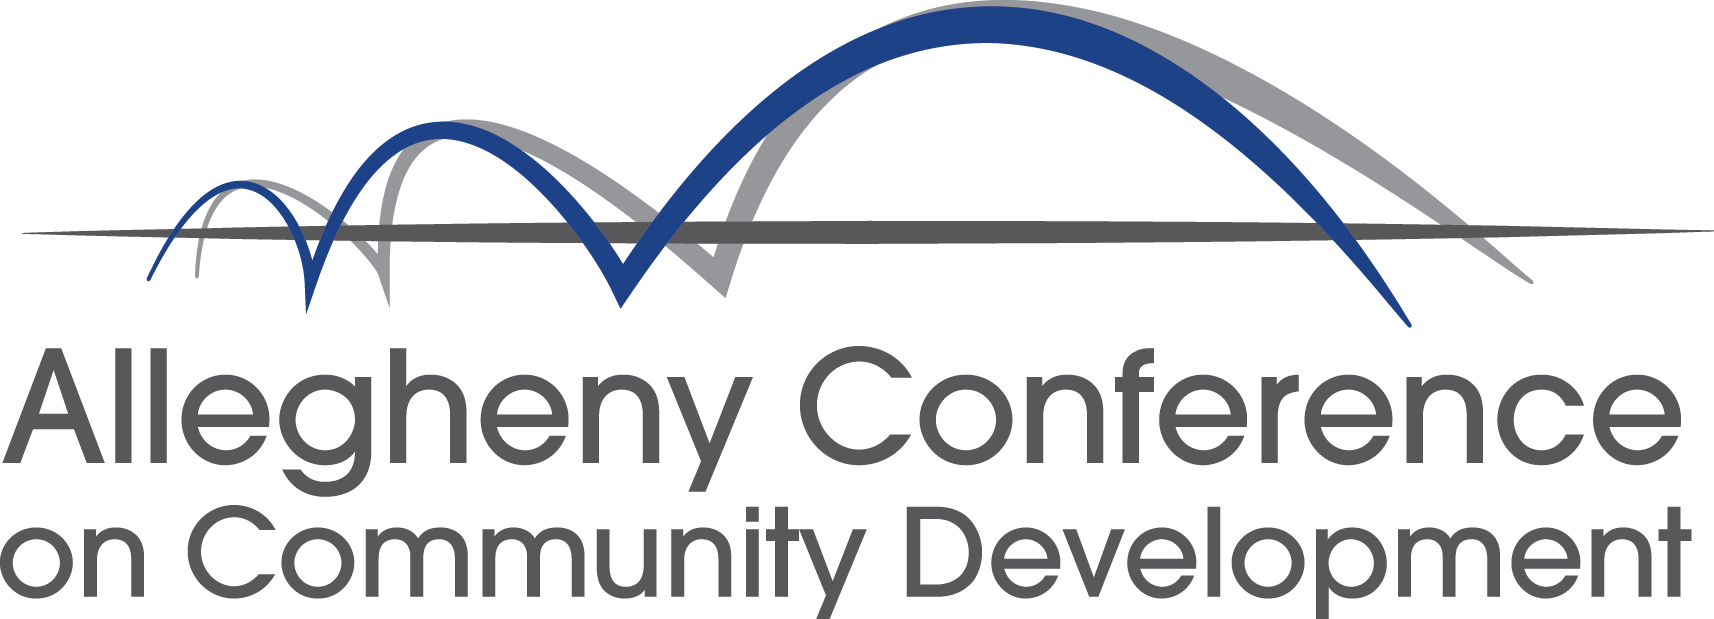 Allegheny Conference on Community Development - 1192 points